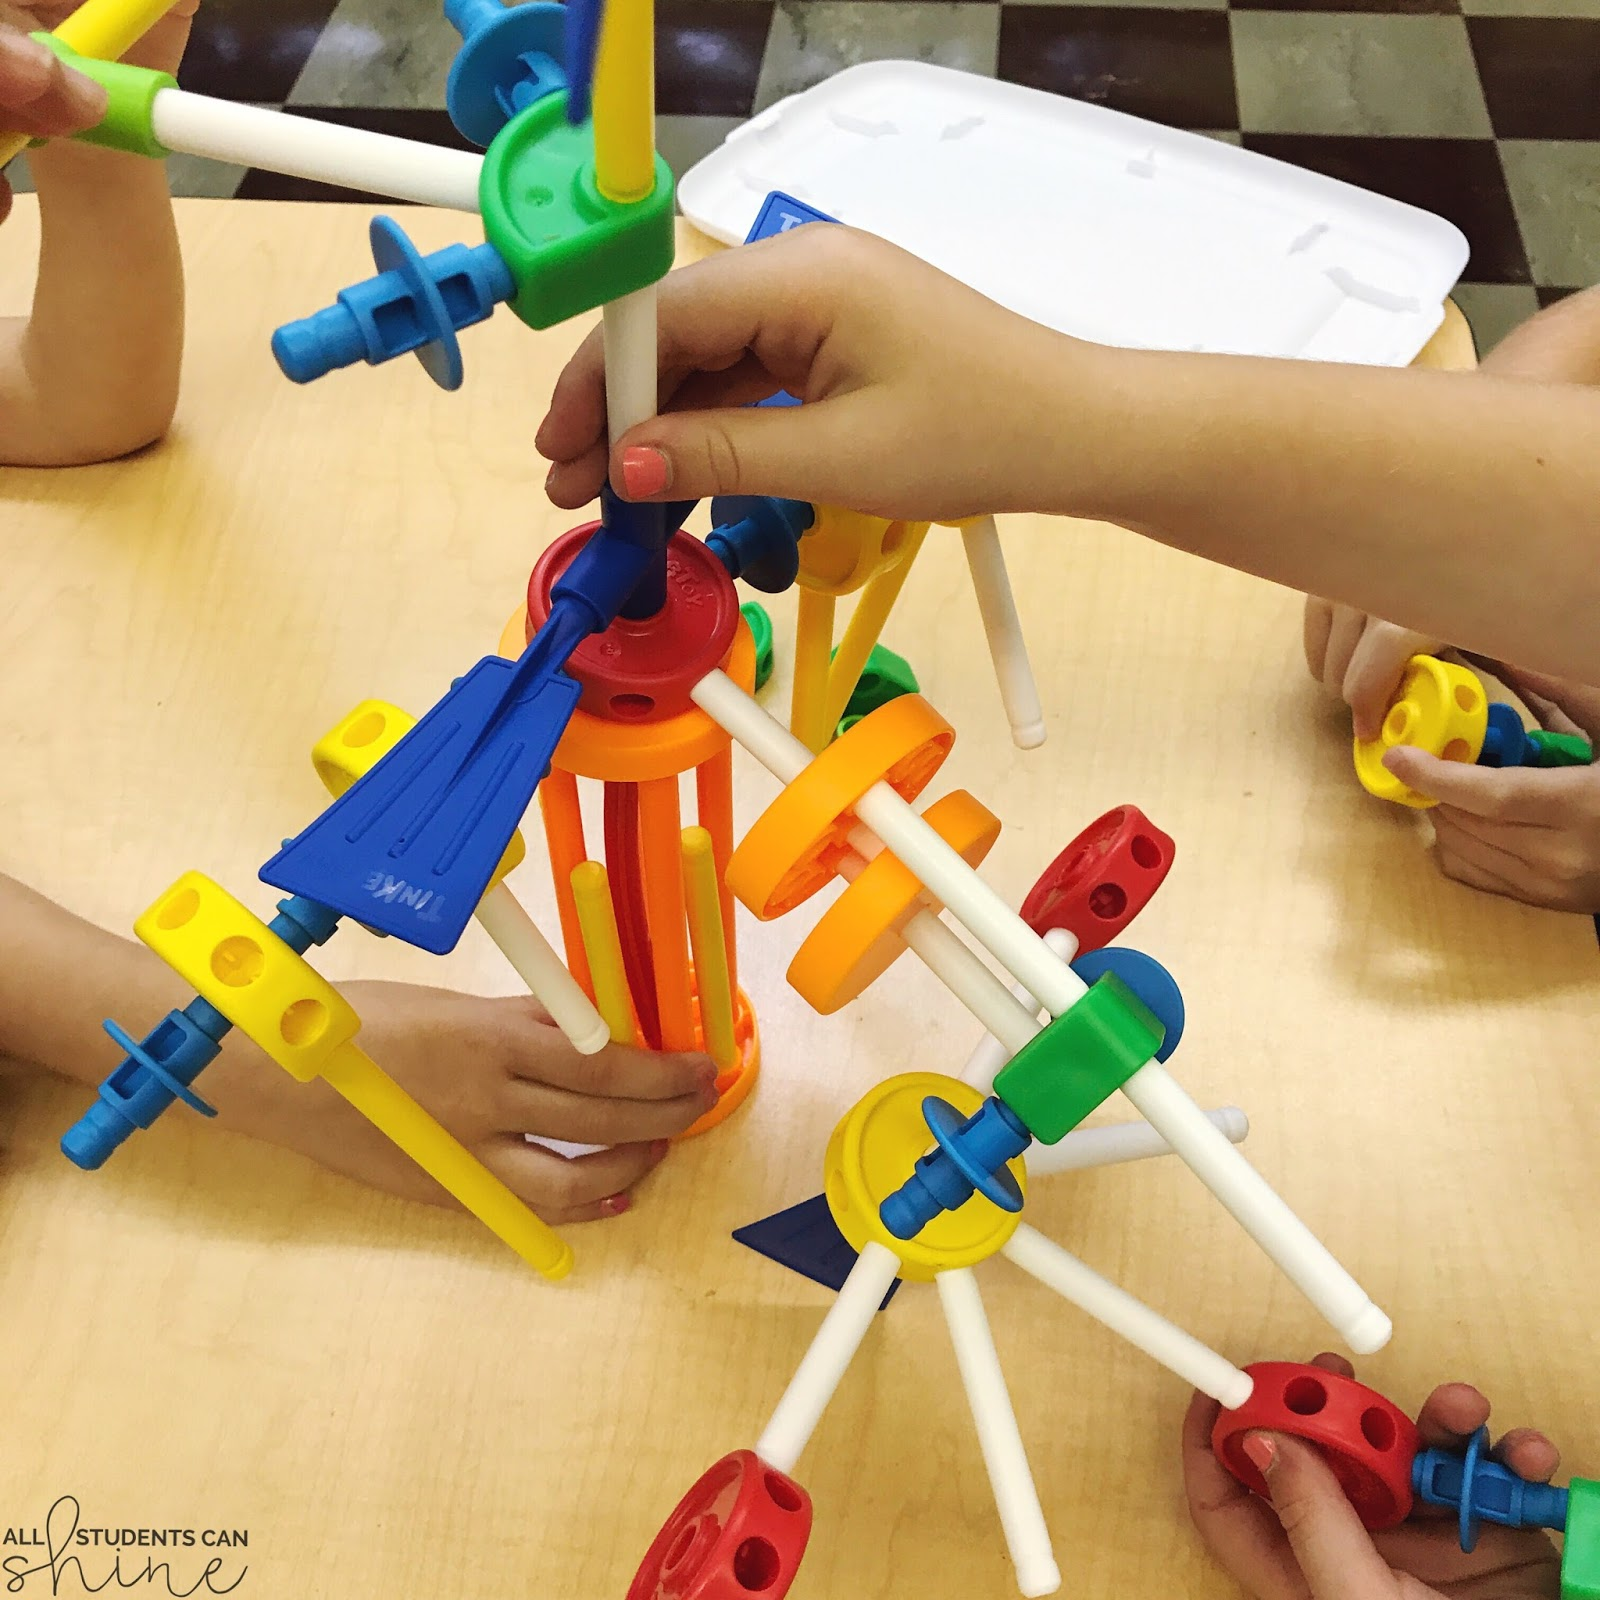 Toys For Grade 1 : Morning tubs in the elementary classroom all students